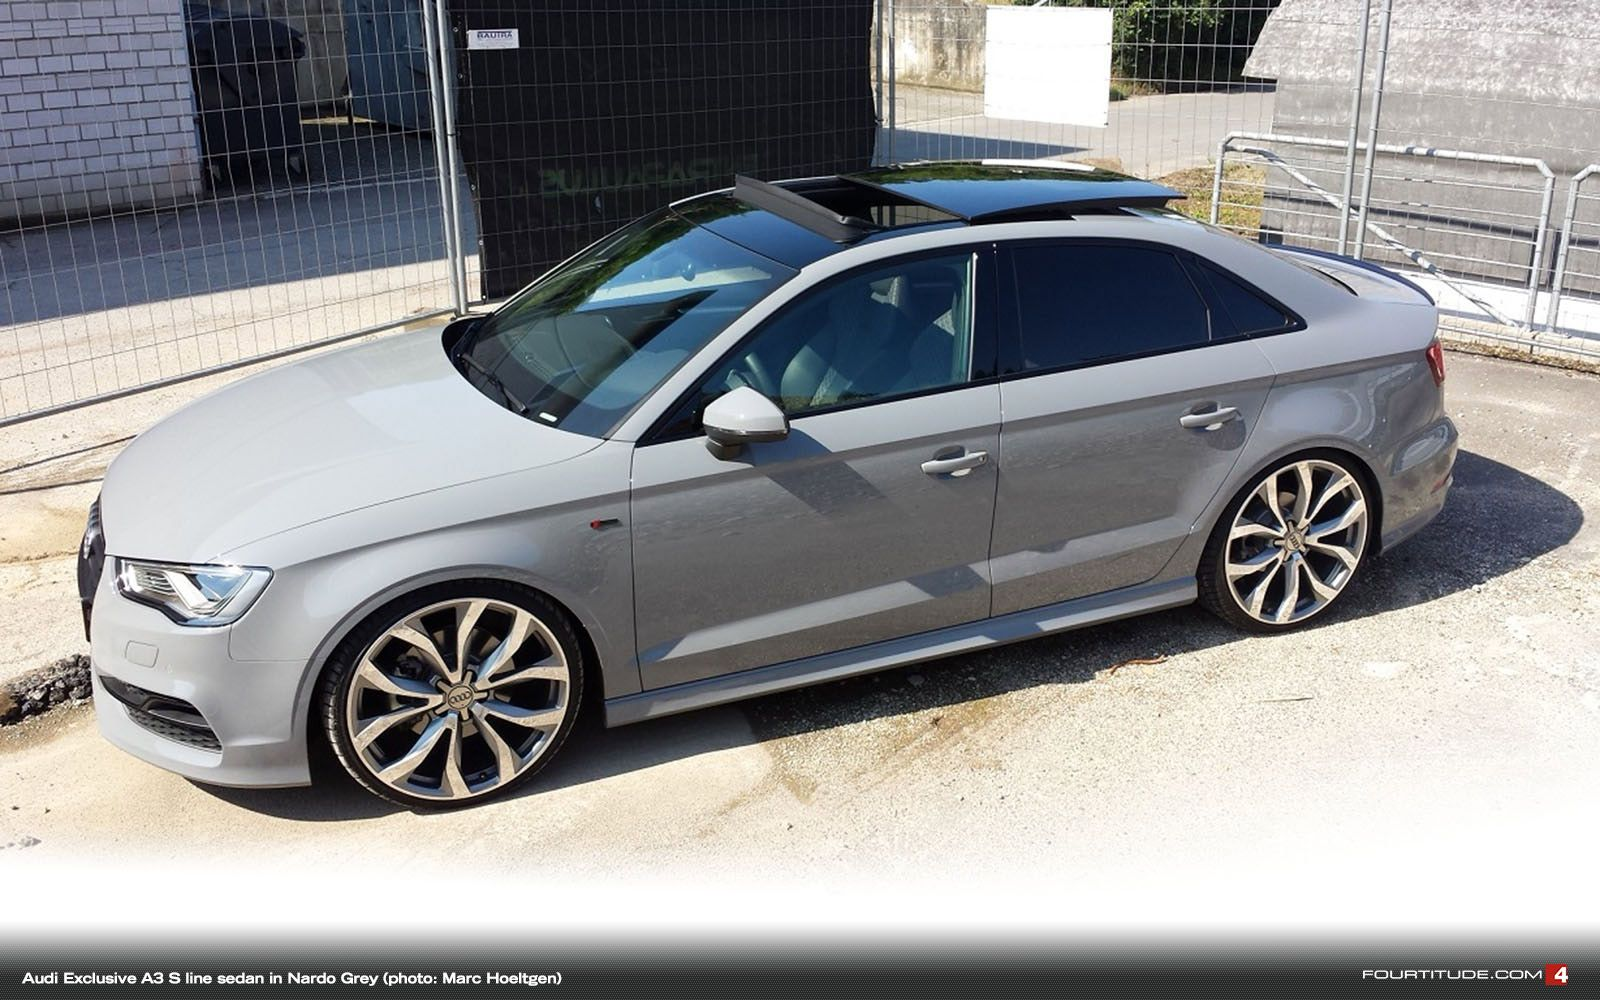 Audi Exclusive Nardo Grey A3 S line Sedan. Be Jealous. Be ...